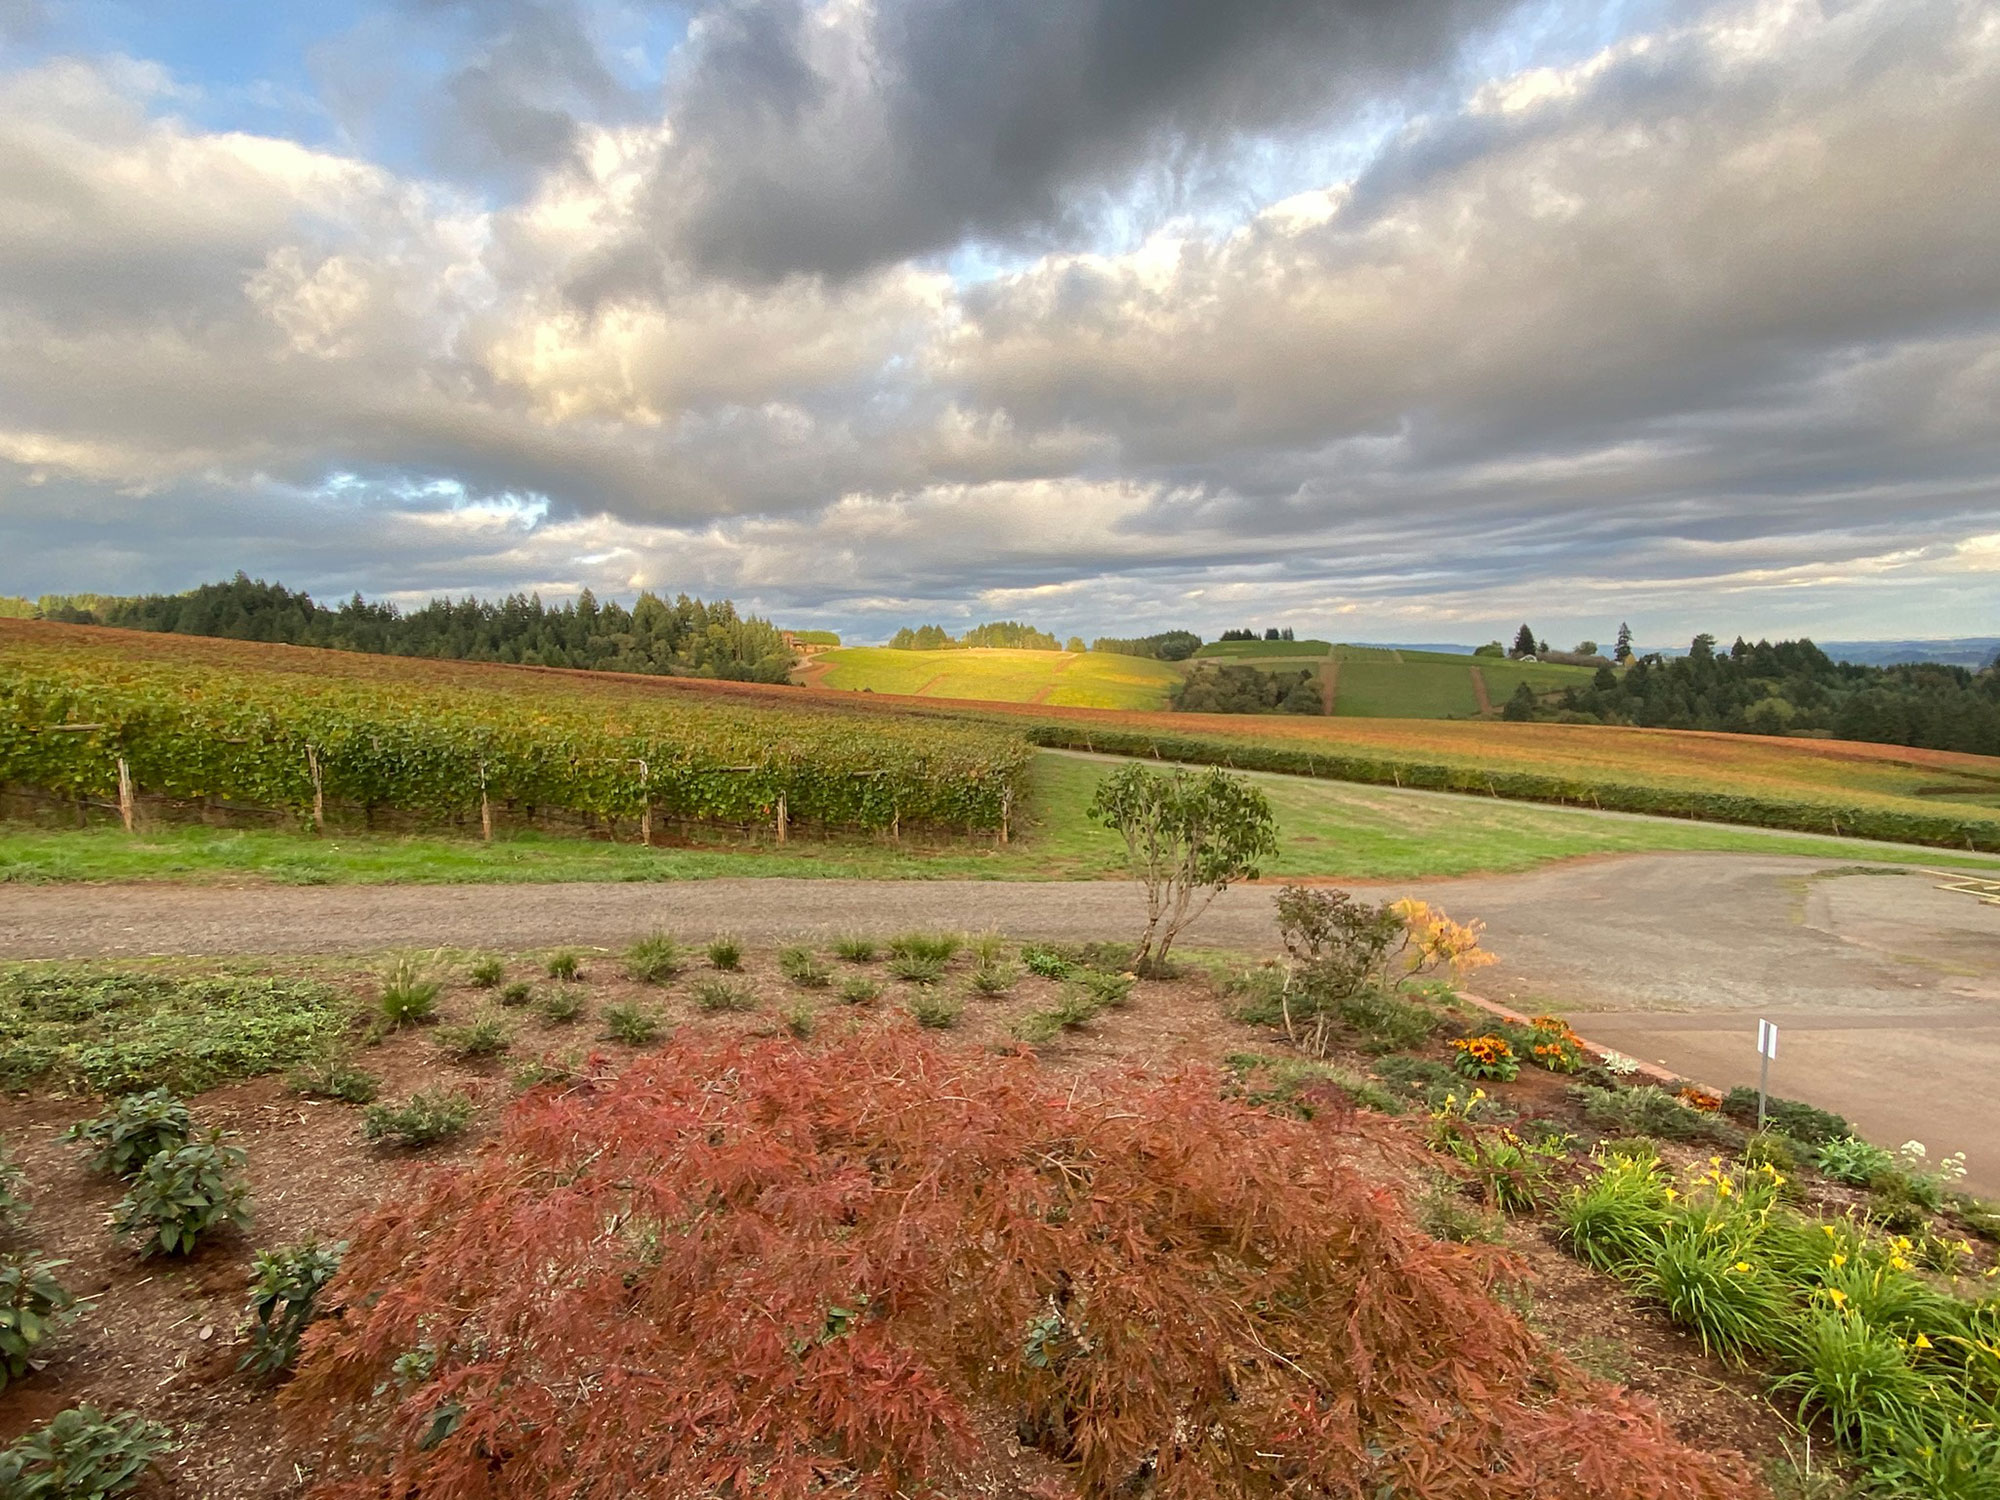 Knudsen vineyard view